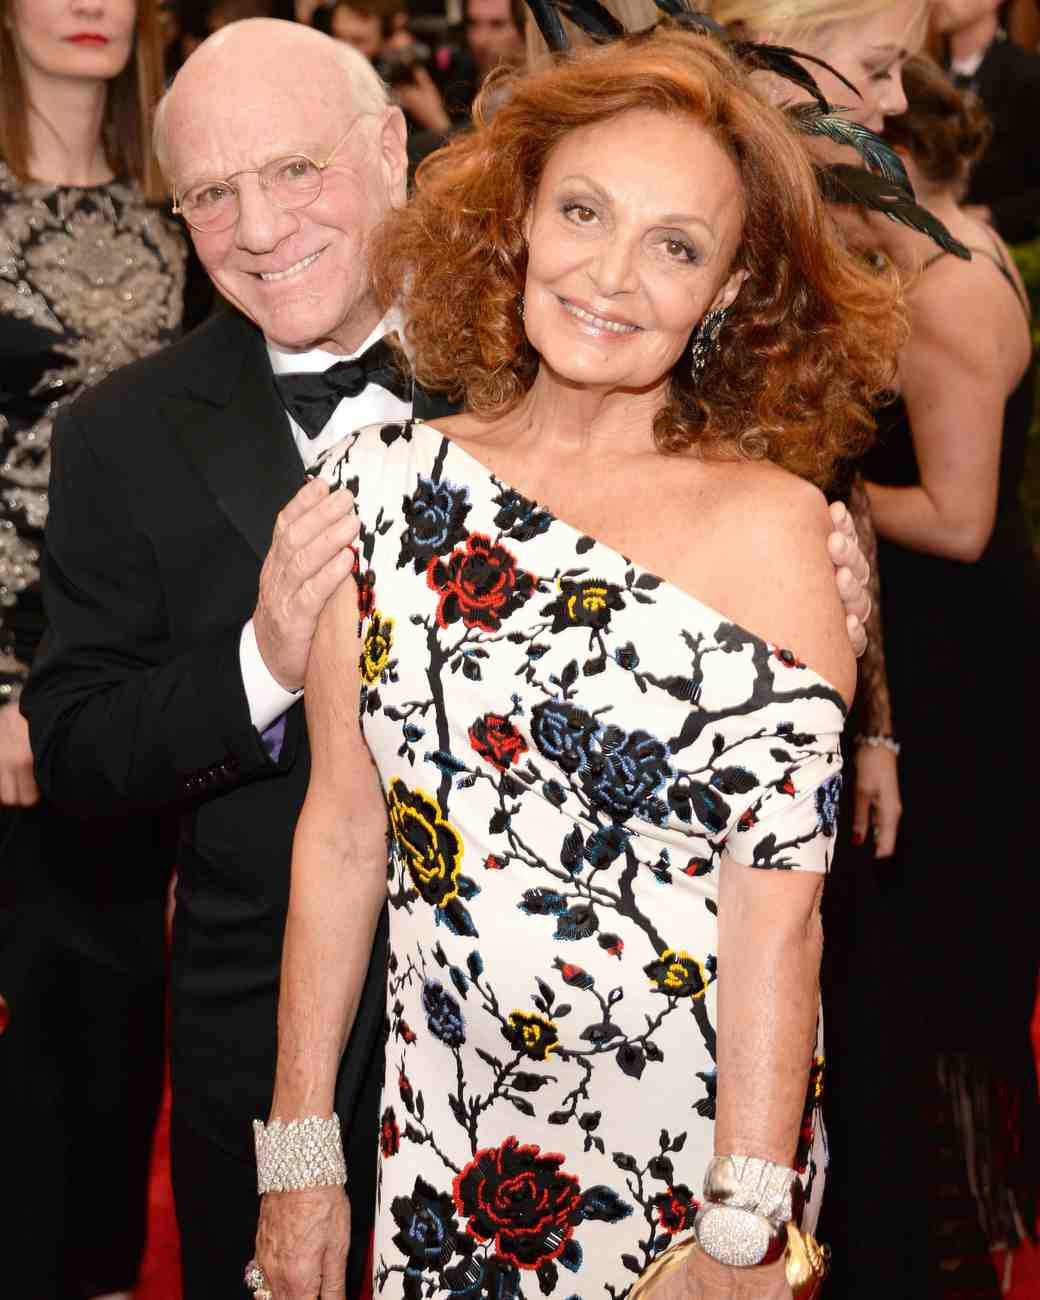 diane-von-furstenberg-barry-diller-iconic-hollywood-couples-0216.jpg